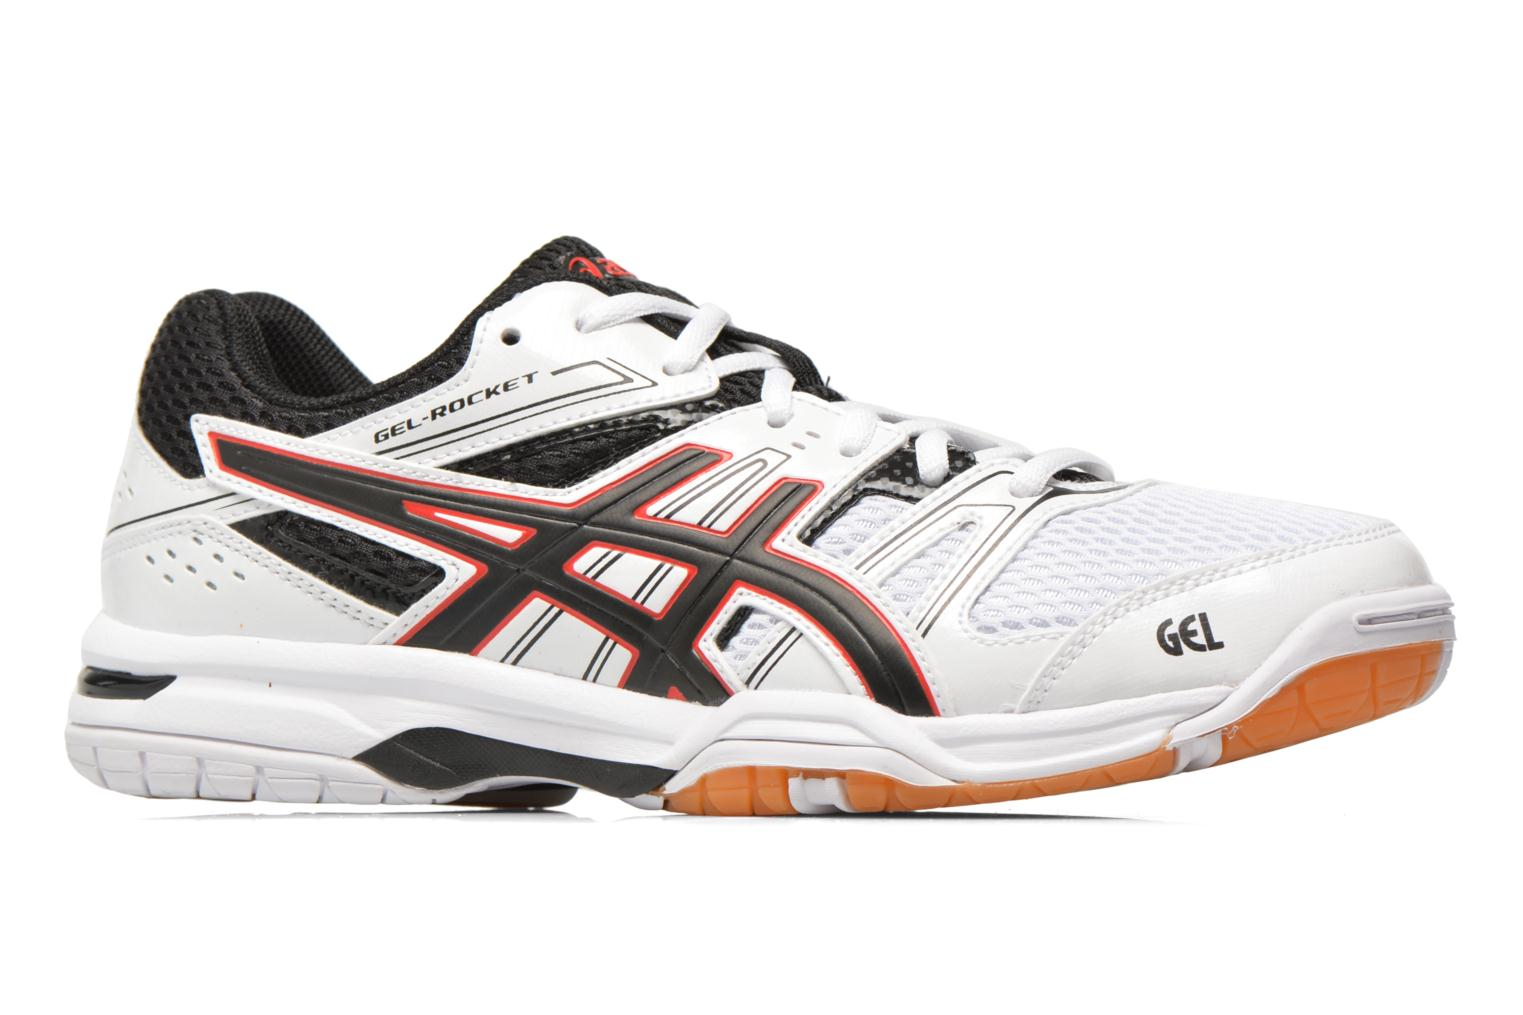 Gel-Rocket 7 White/Black/Vermilion